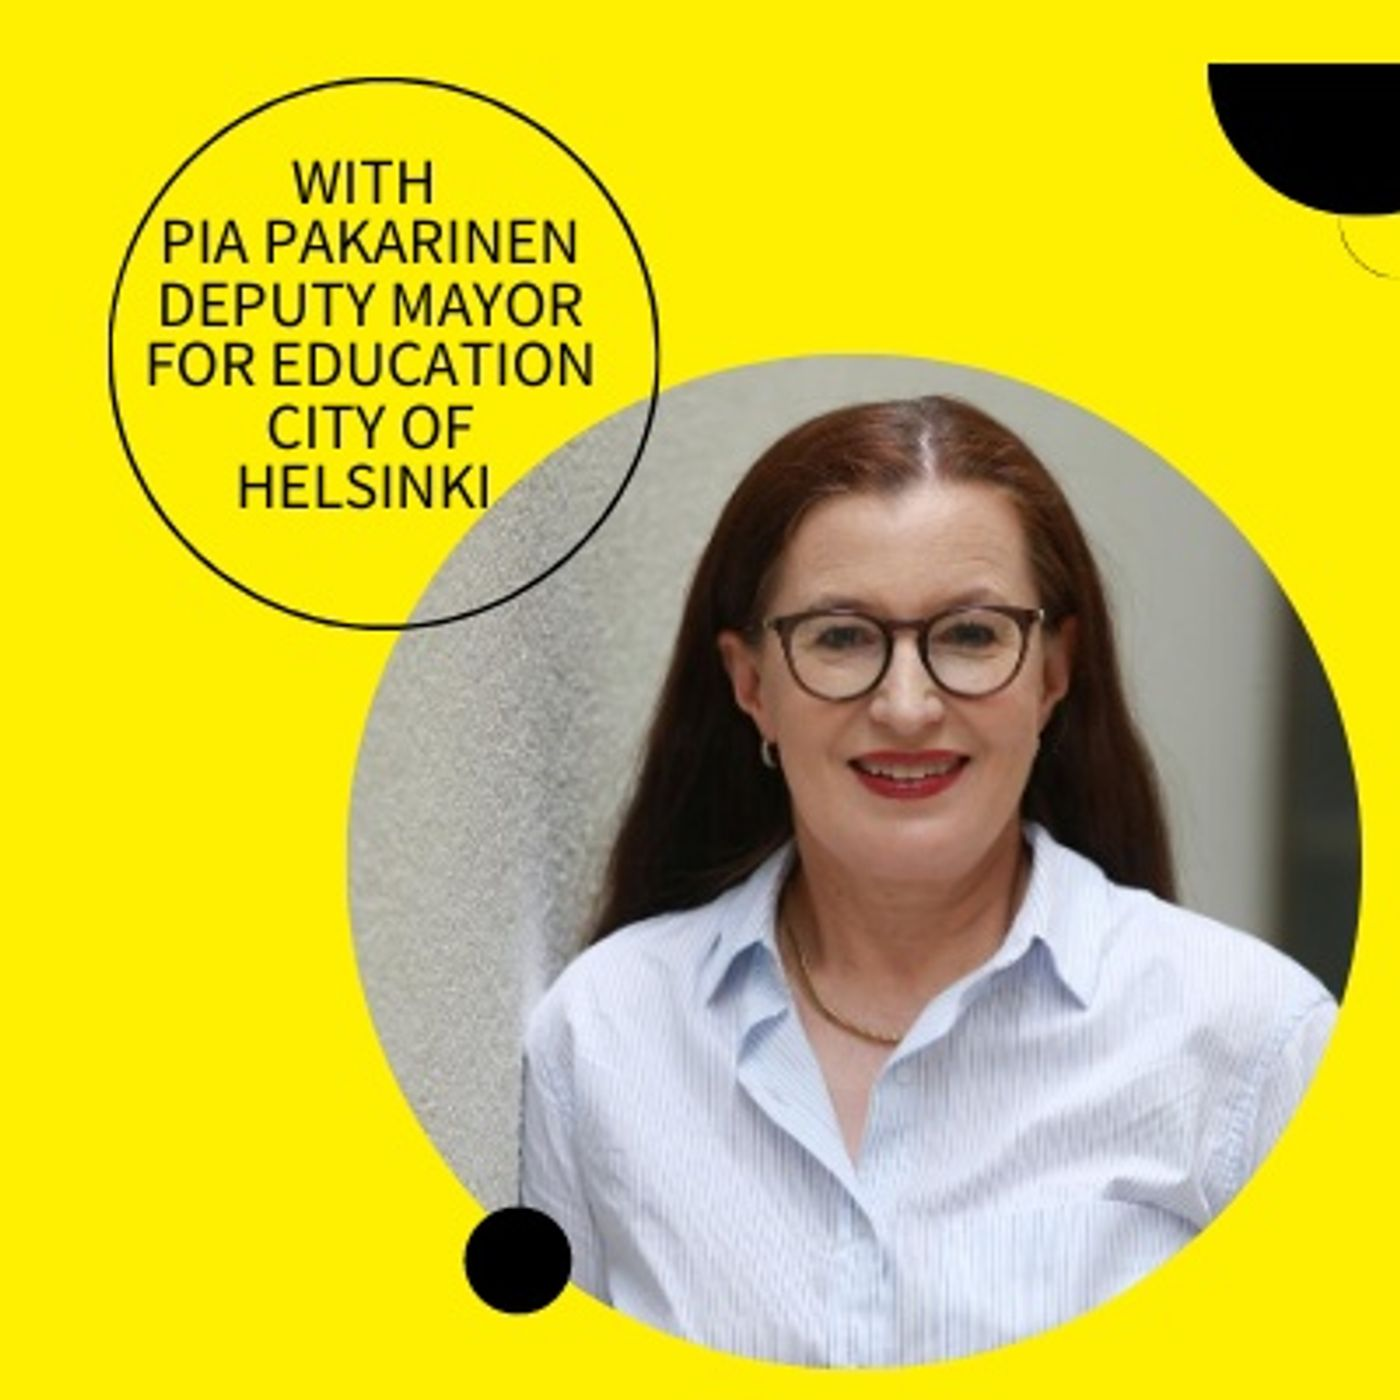 #4, Pia Pakarinen: The case of Finland: When you build an equitable system, it performs in a crisis.